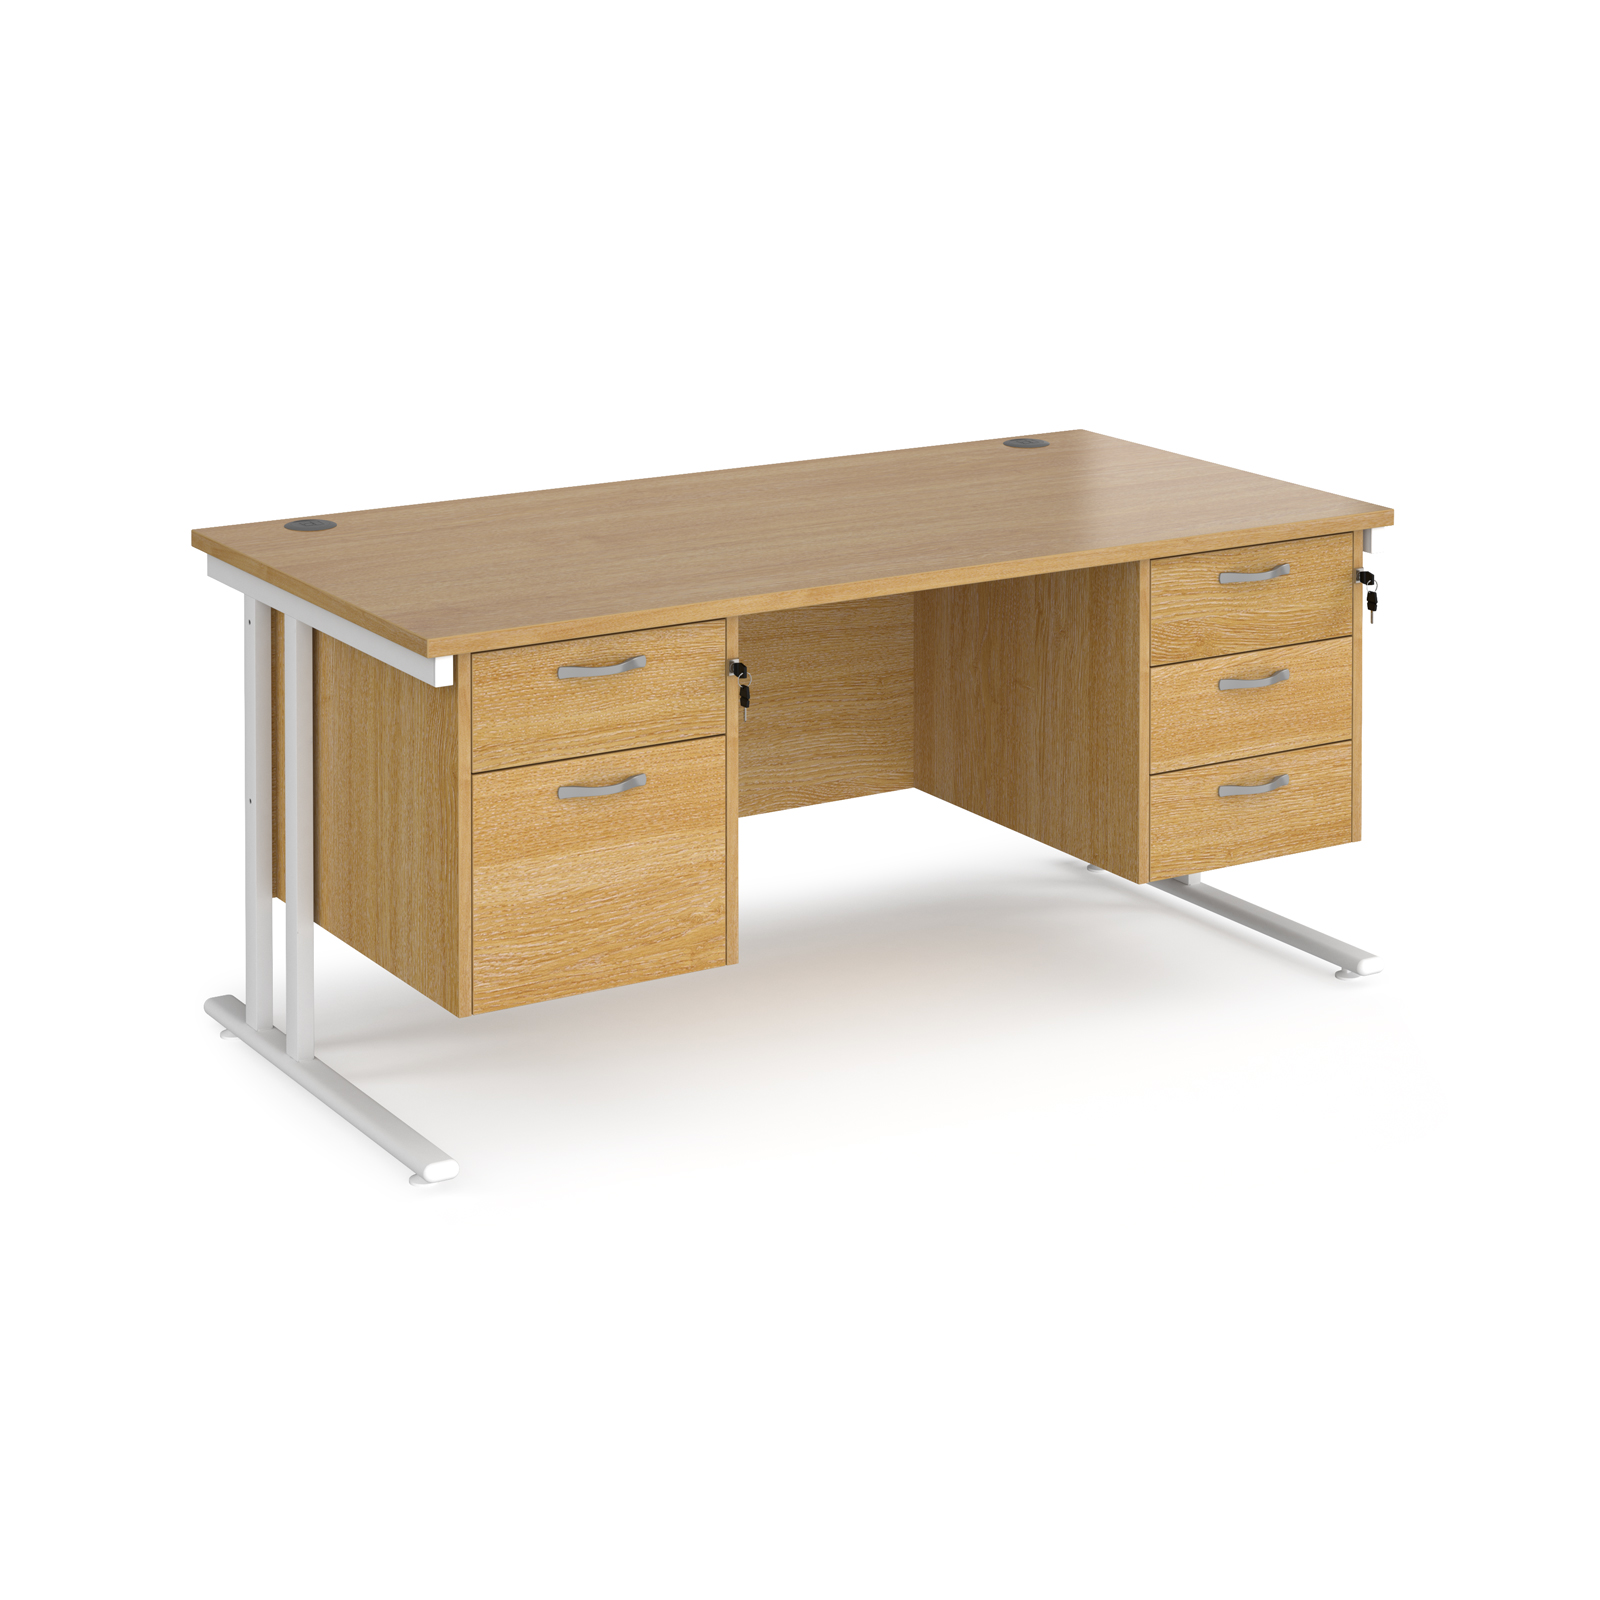 Maestro 25 straight desk 1600mm x 800mm with 2 and 3 drawer pedestals - white cantilever leg frame, oak top